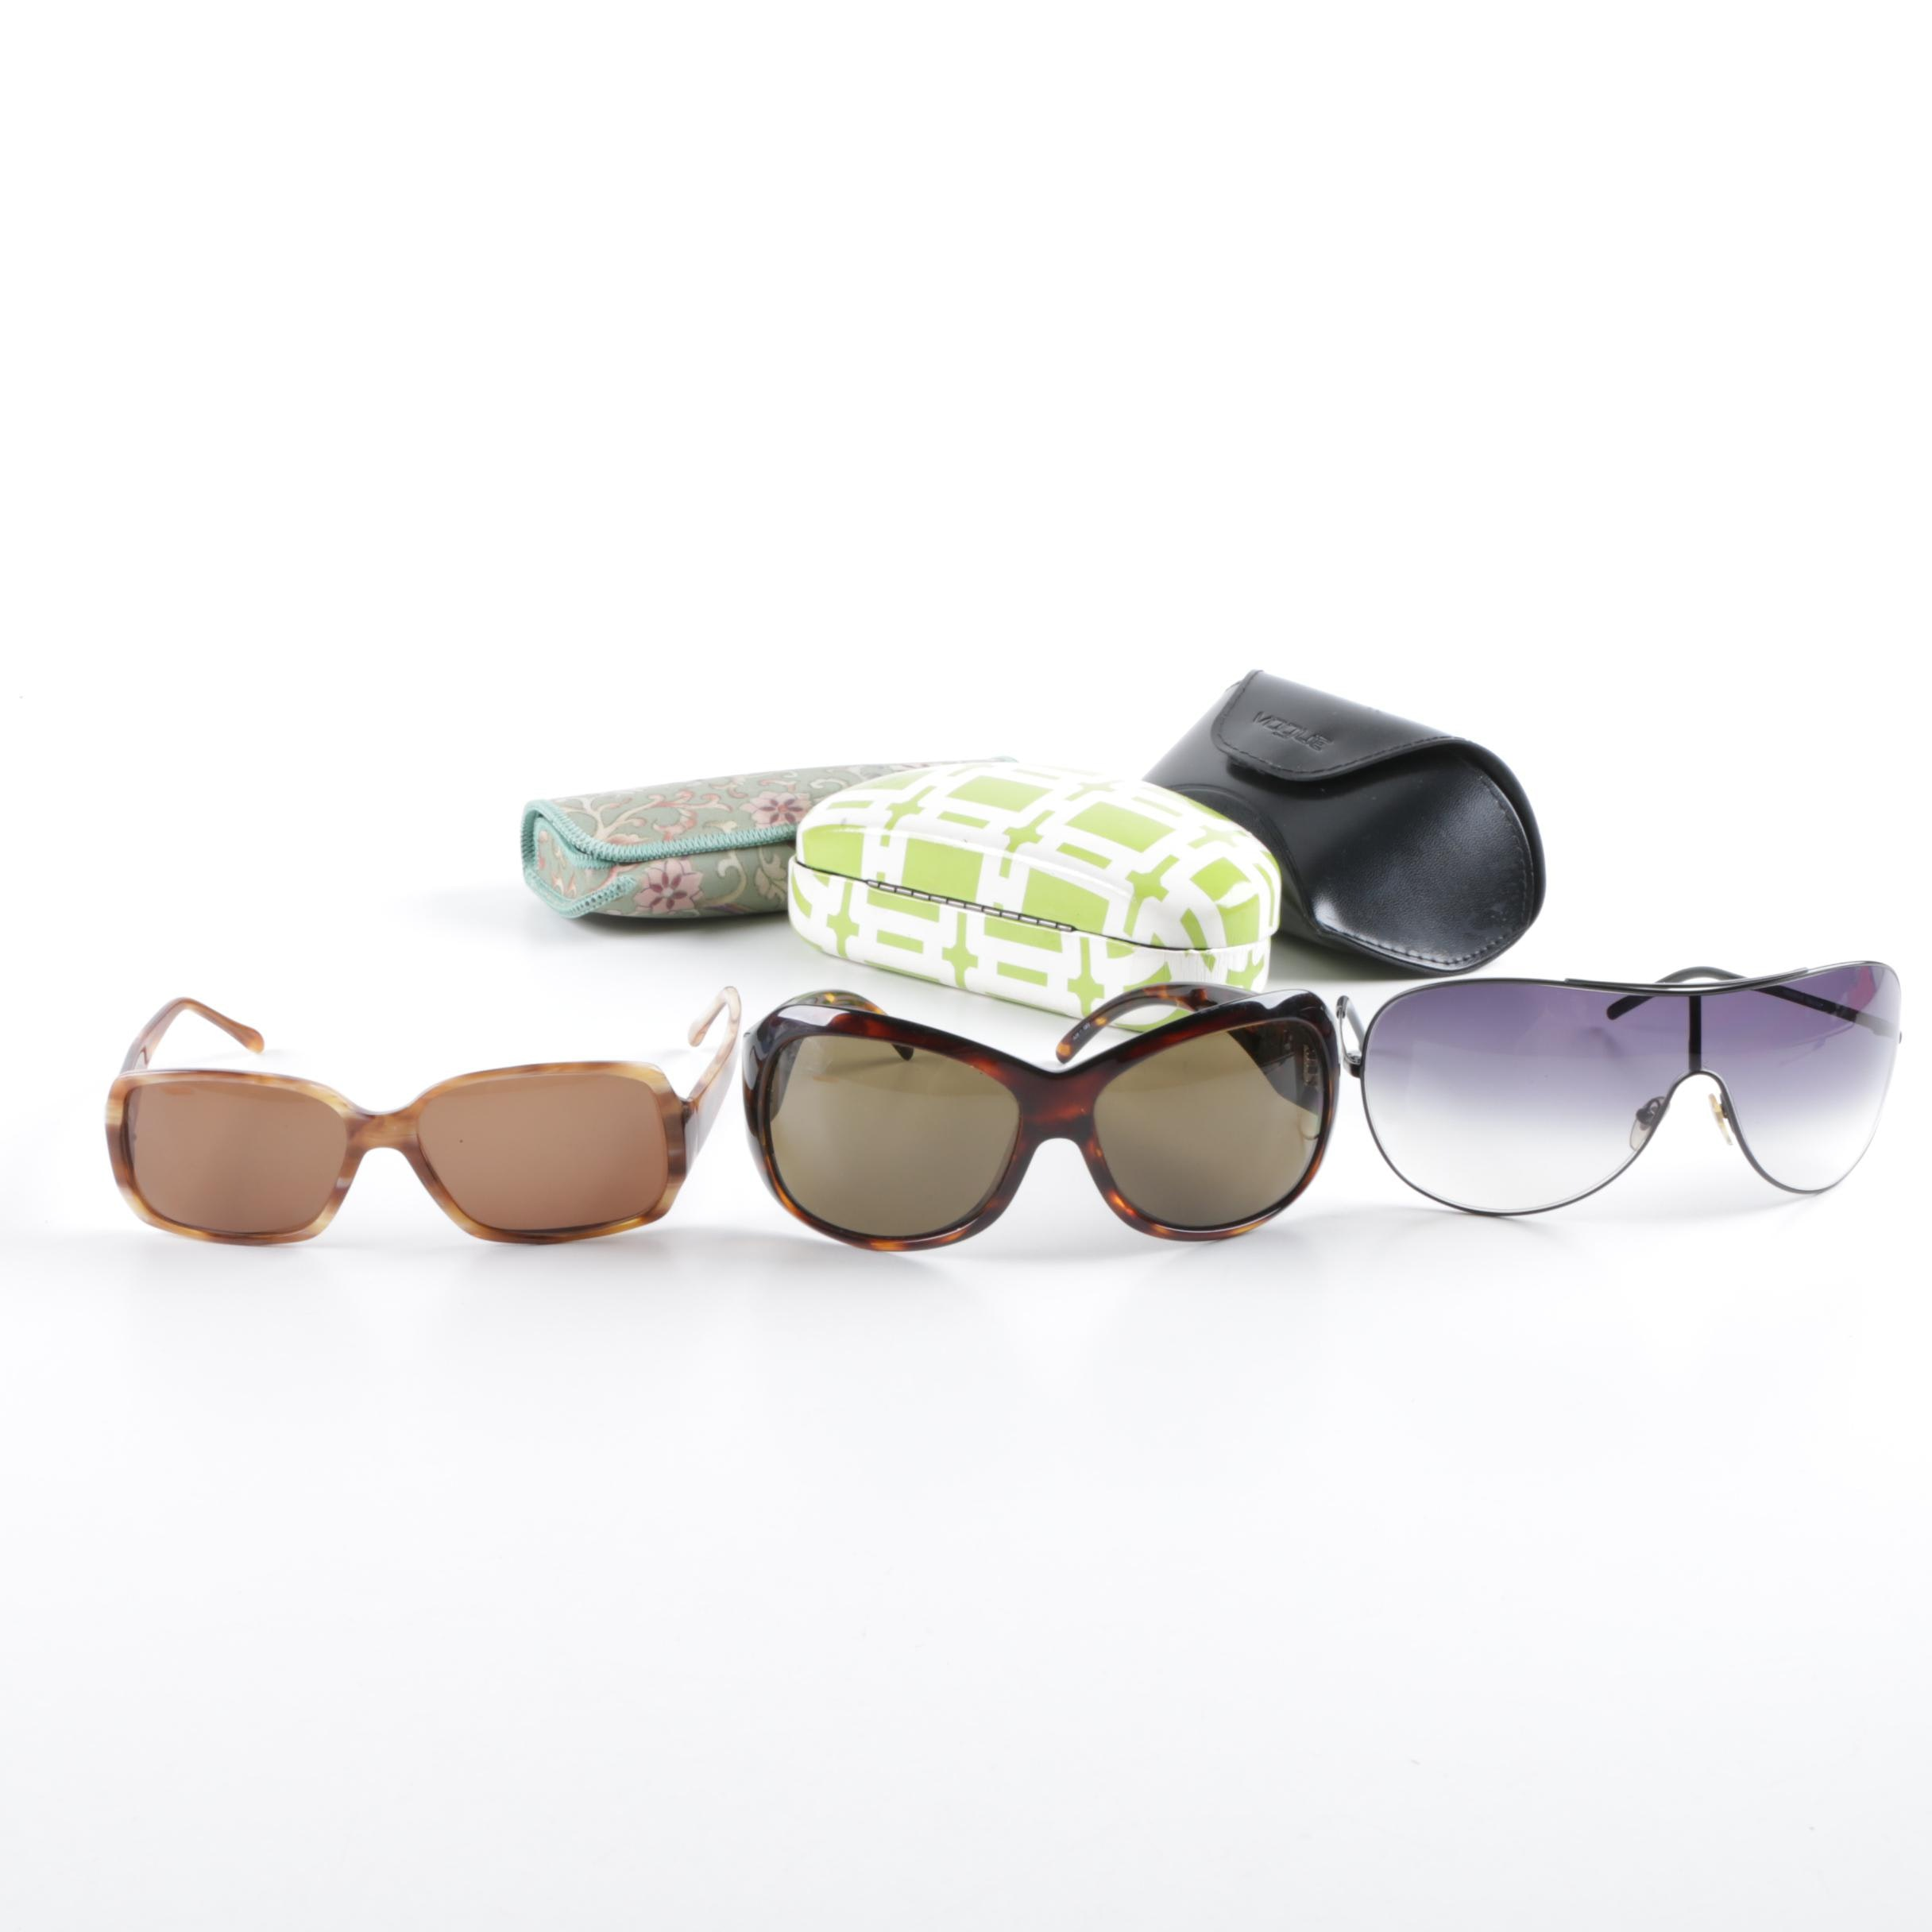 Women's 1990s Oversized Sunglasses, Including Vogue and France Luxe